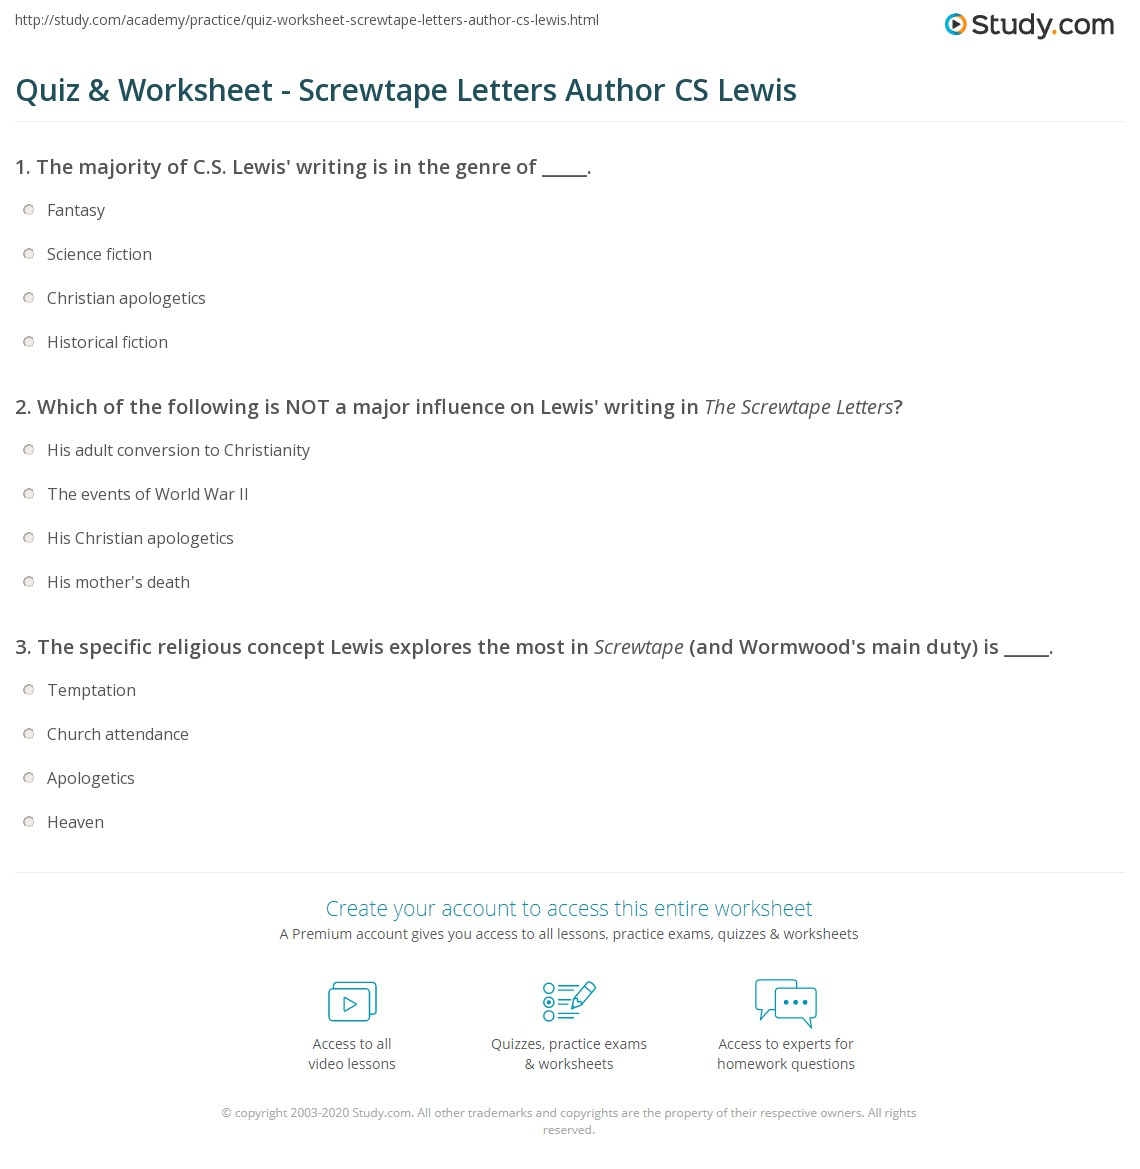 print who wrote the screwtape letters about cs lewis worksheet